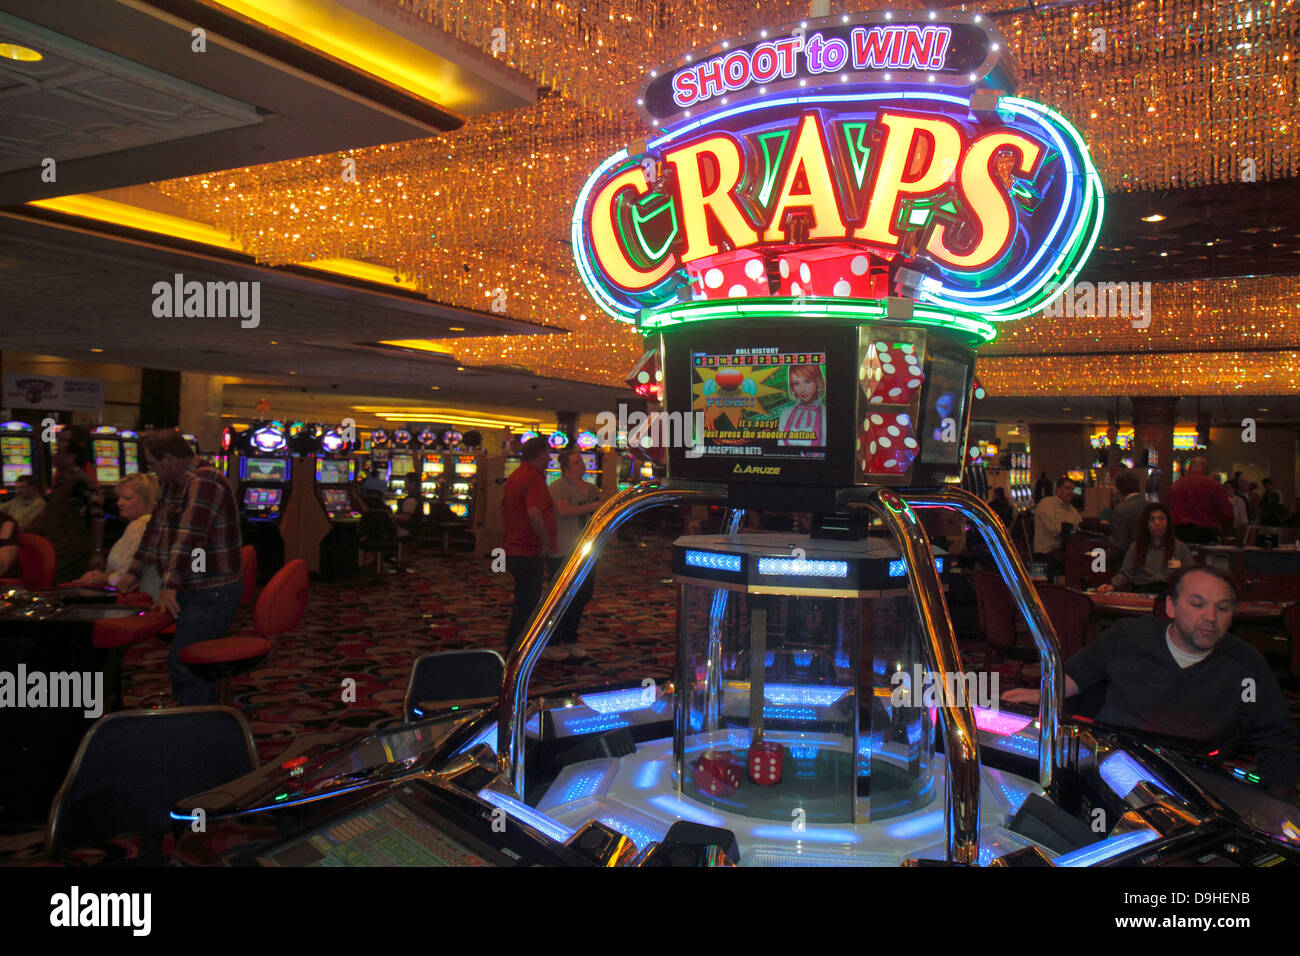 Casino craps gambling game slot american casinos 2008